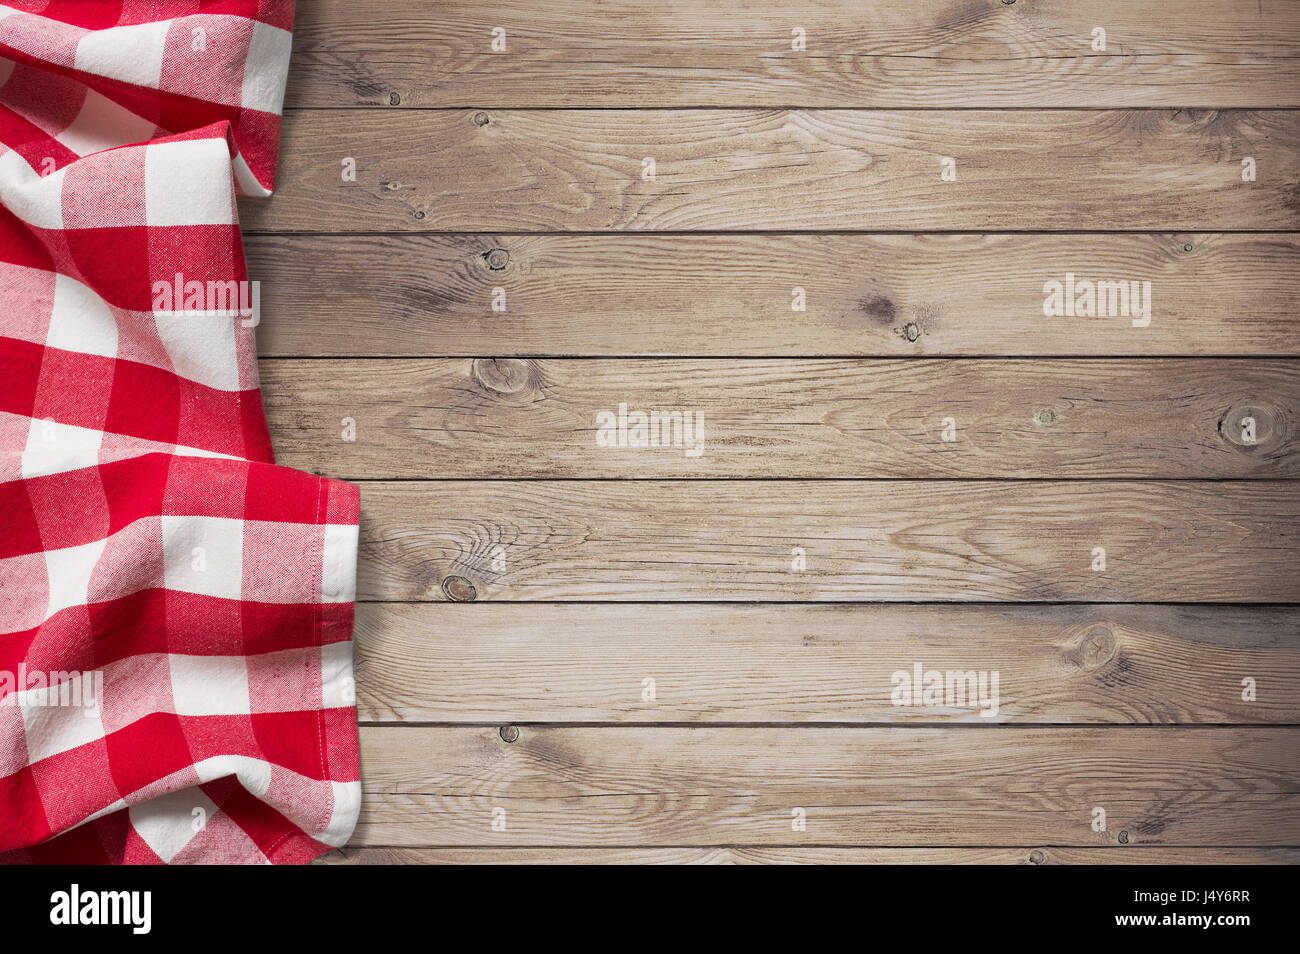 Red picnic tablecloth on wood table background stock photo for Table background